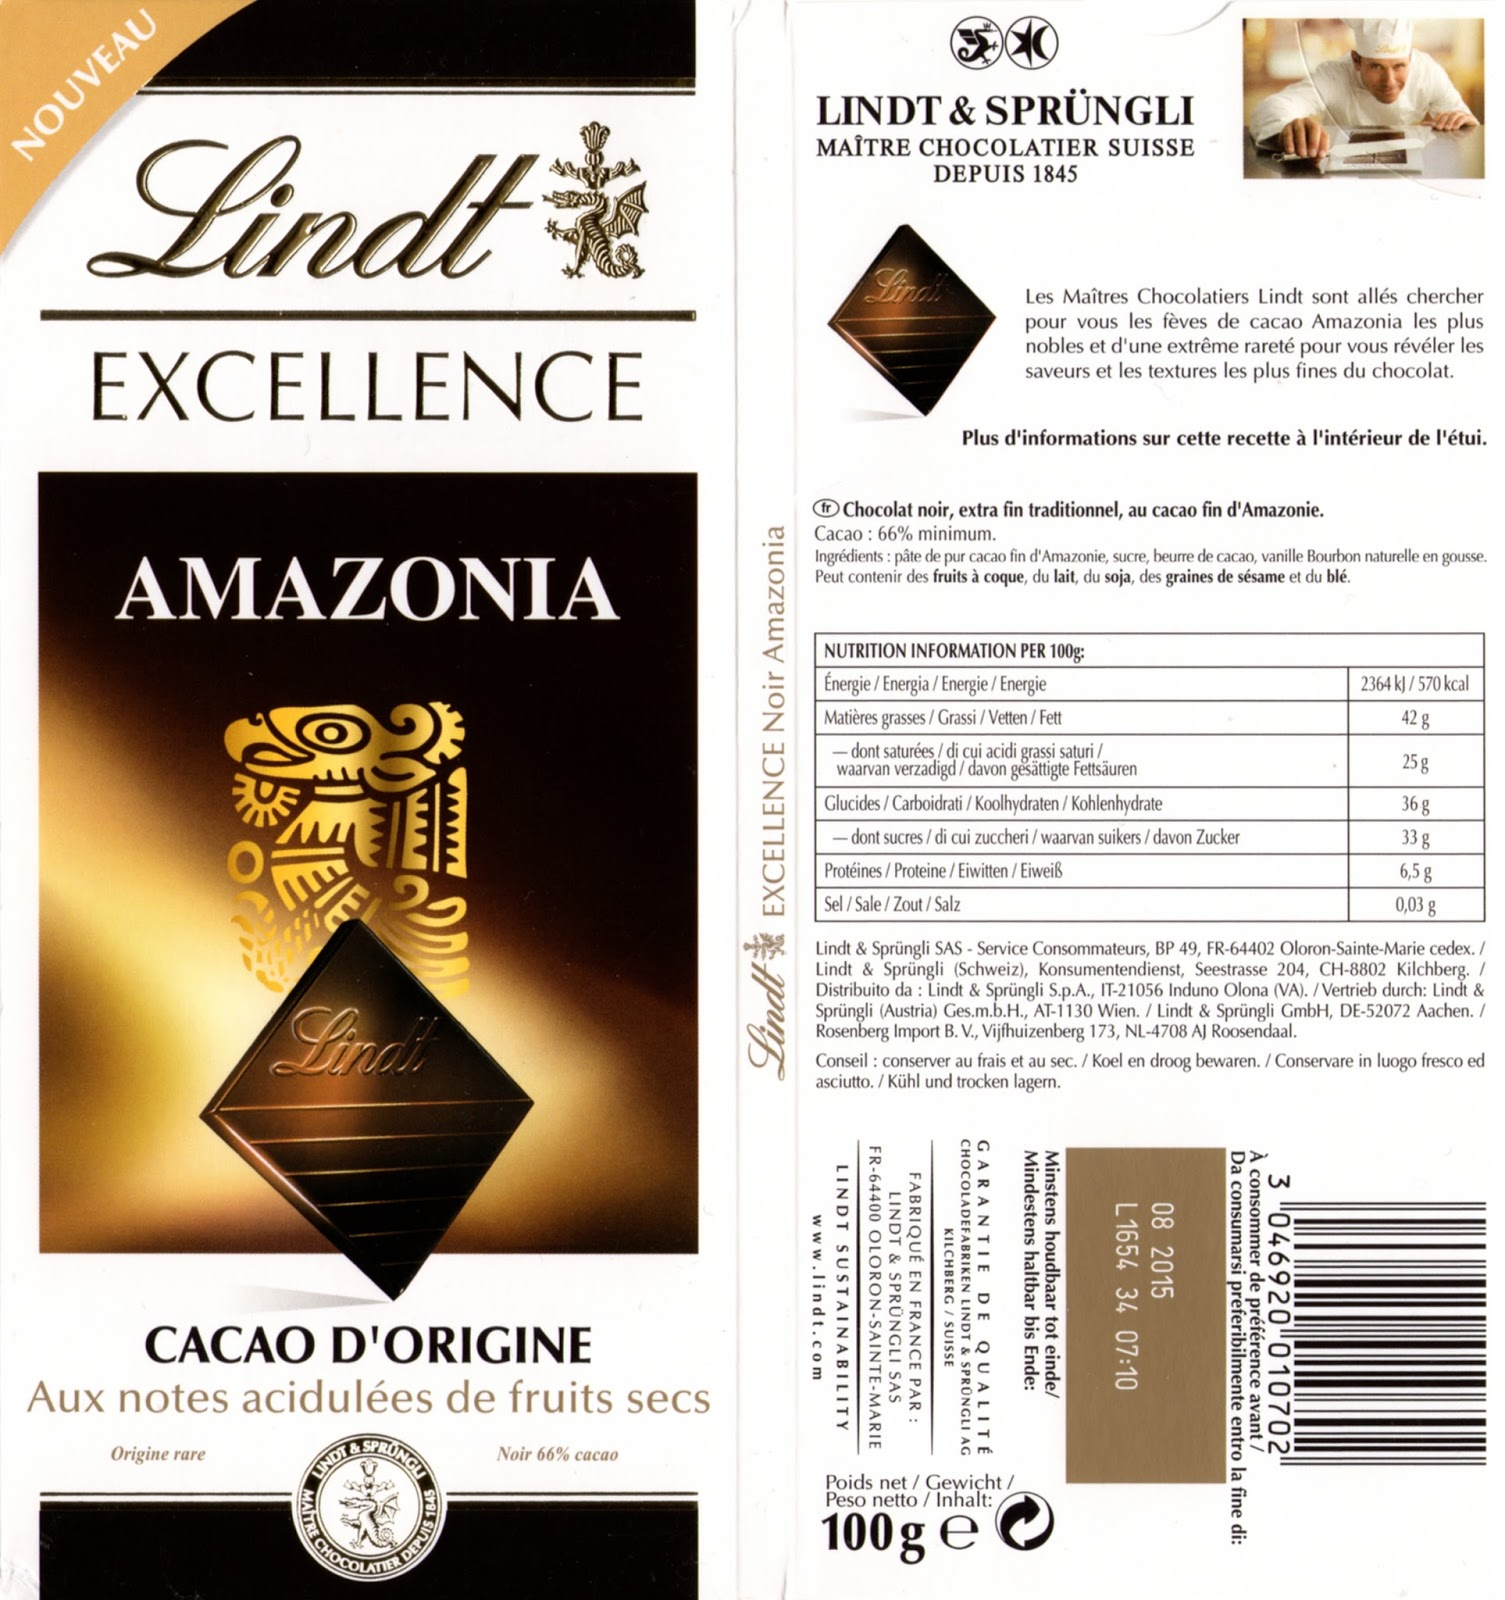 tablette de chocolat noir dégustation lindt excellence amazonia 66